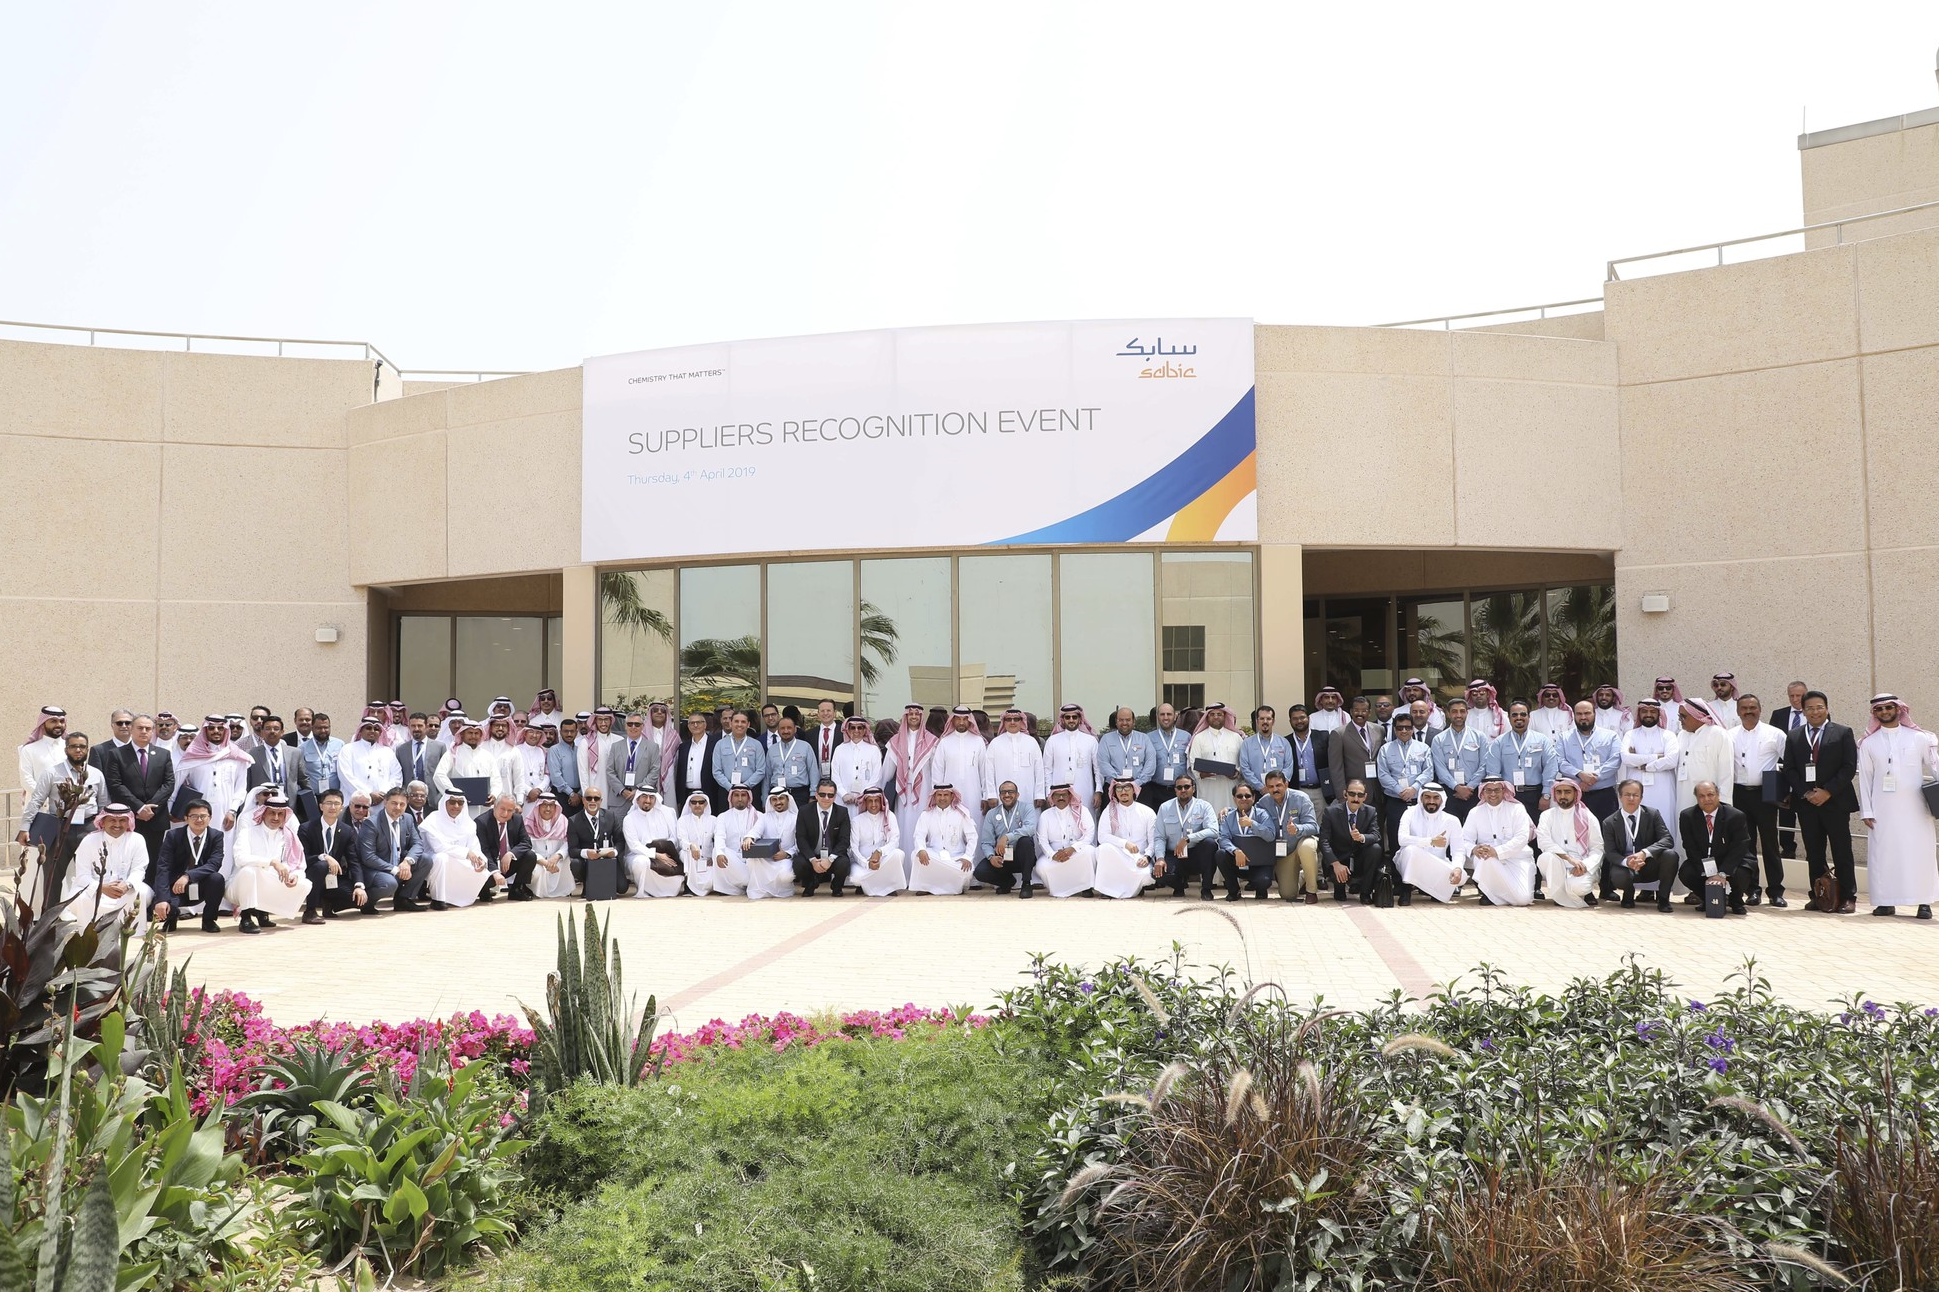 V-LINE EUROPE & USA received the SABIC supplier recognition